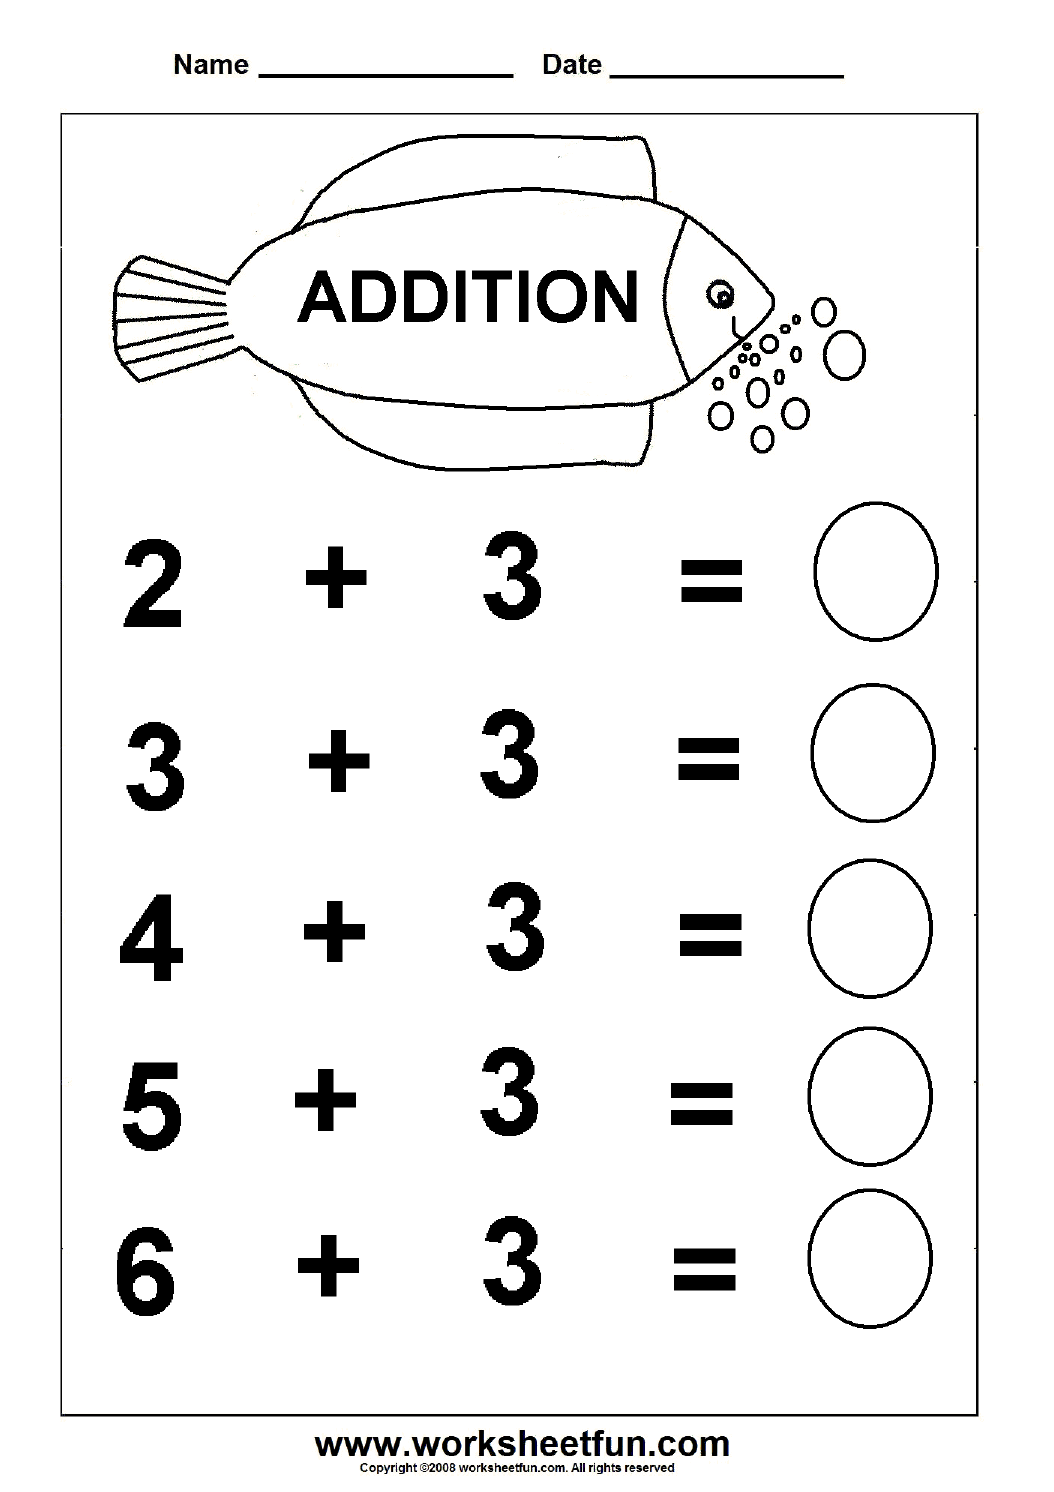 Beginner Addition 6 Kindergarten Addition Worksheets FREE – Addition Worksheets Kindergarten Printable